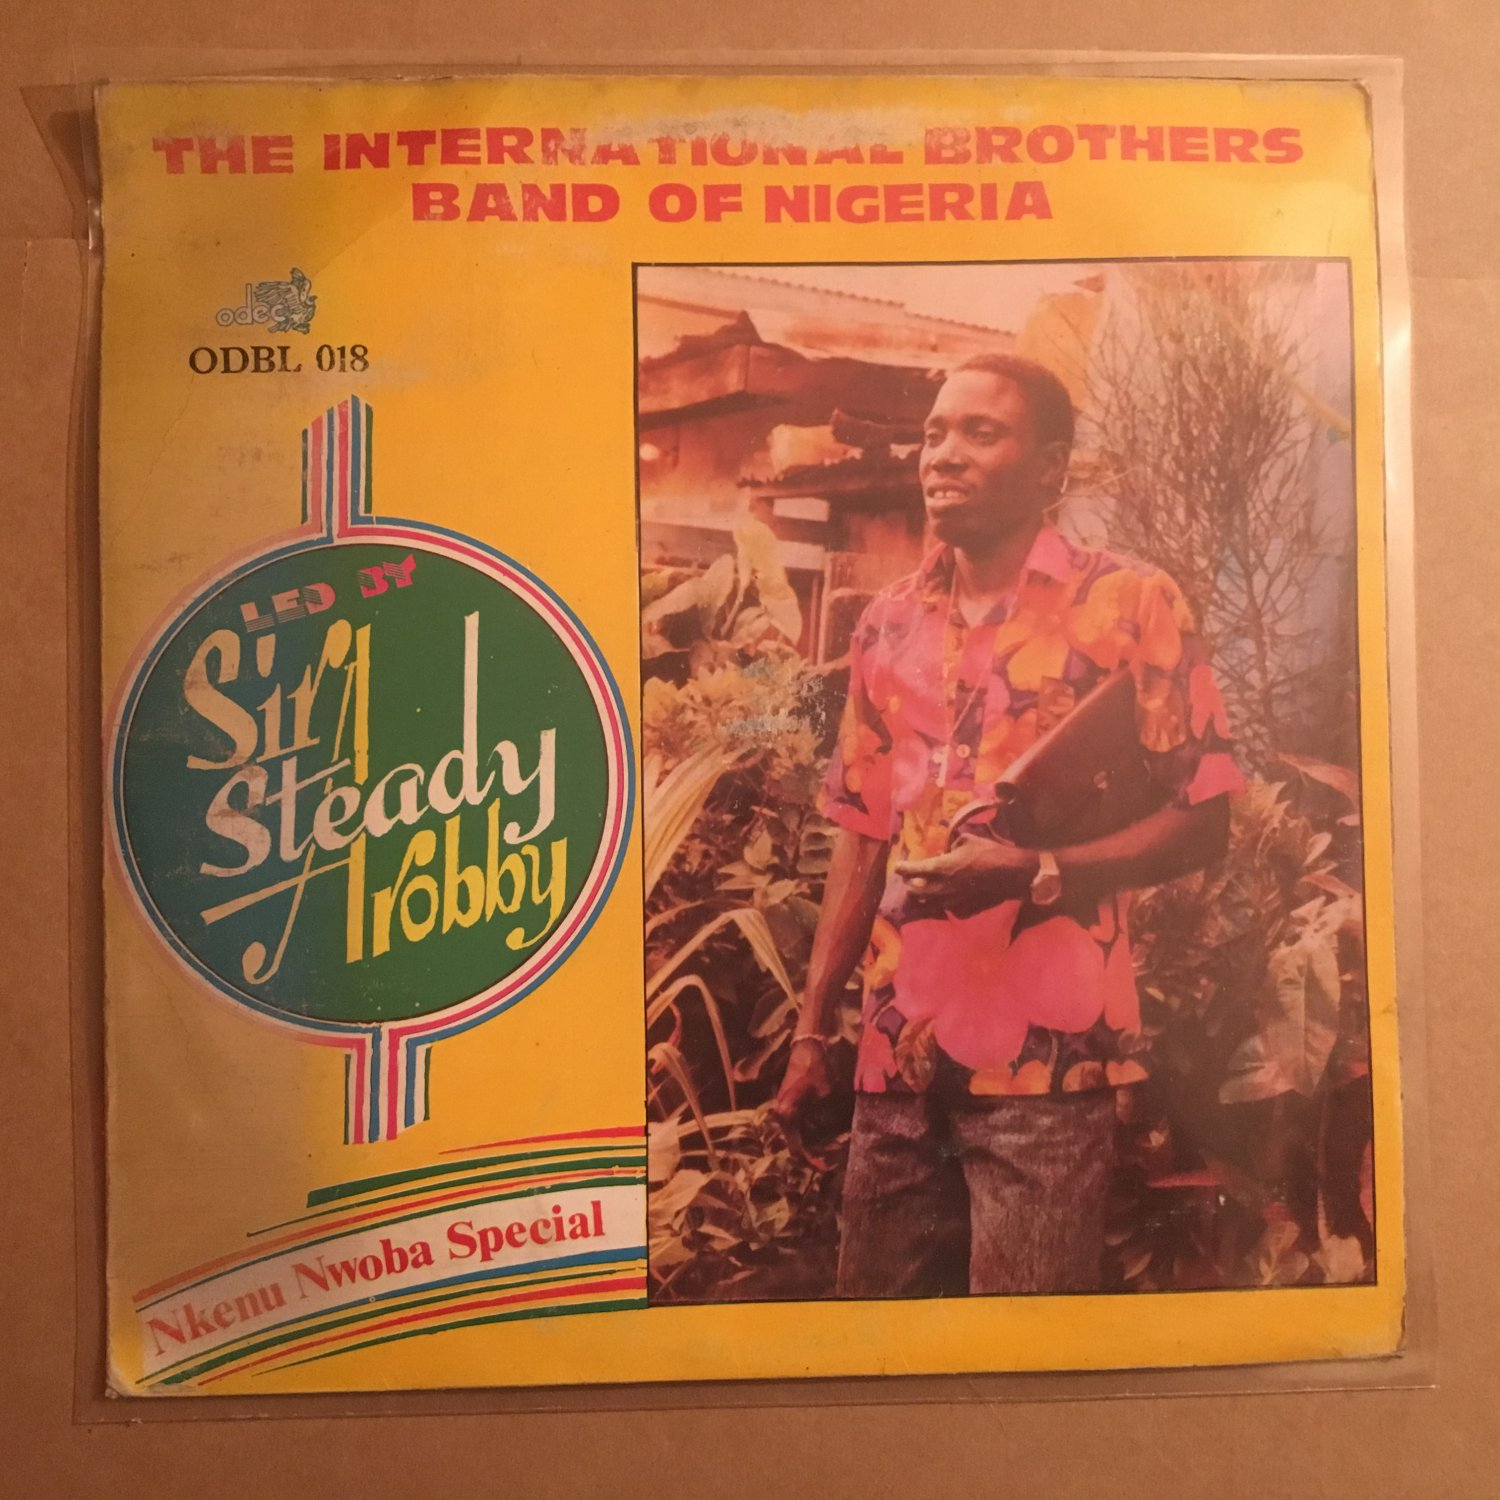 SIR STEADY AROBBY & HIS INT. BROTHERS BAND LP nkenu nwoba special NIGERIA HIGHLIFE mp3 LISTEN